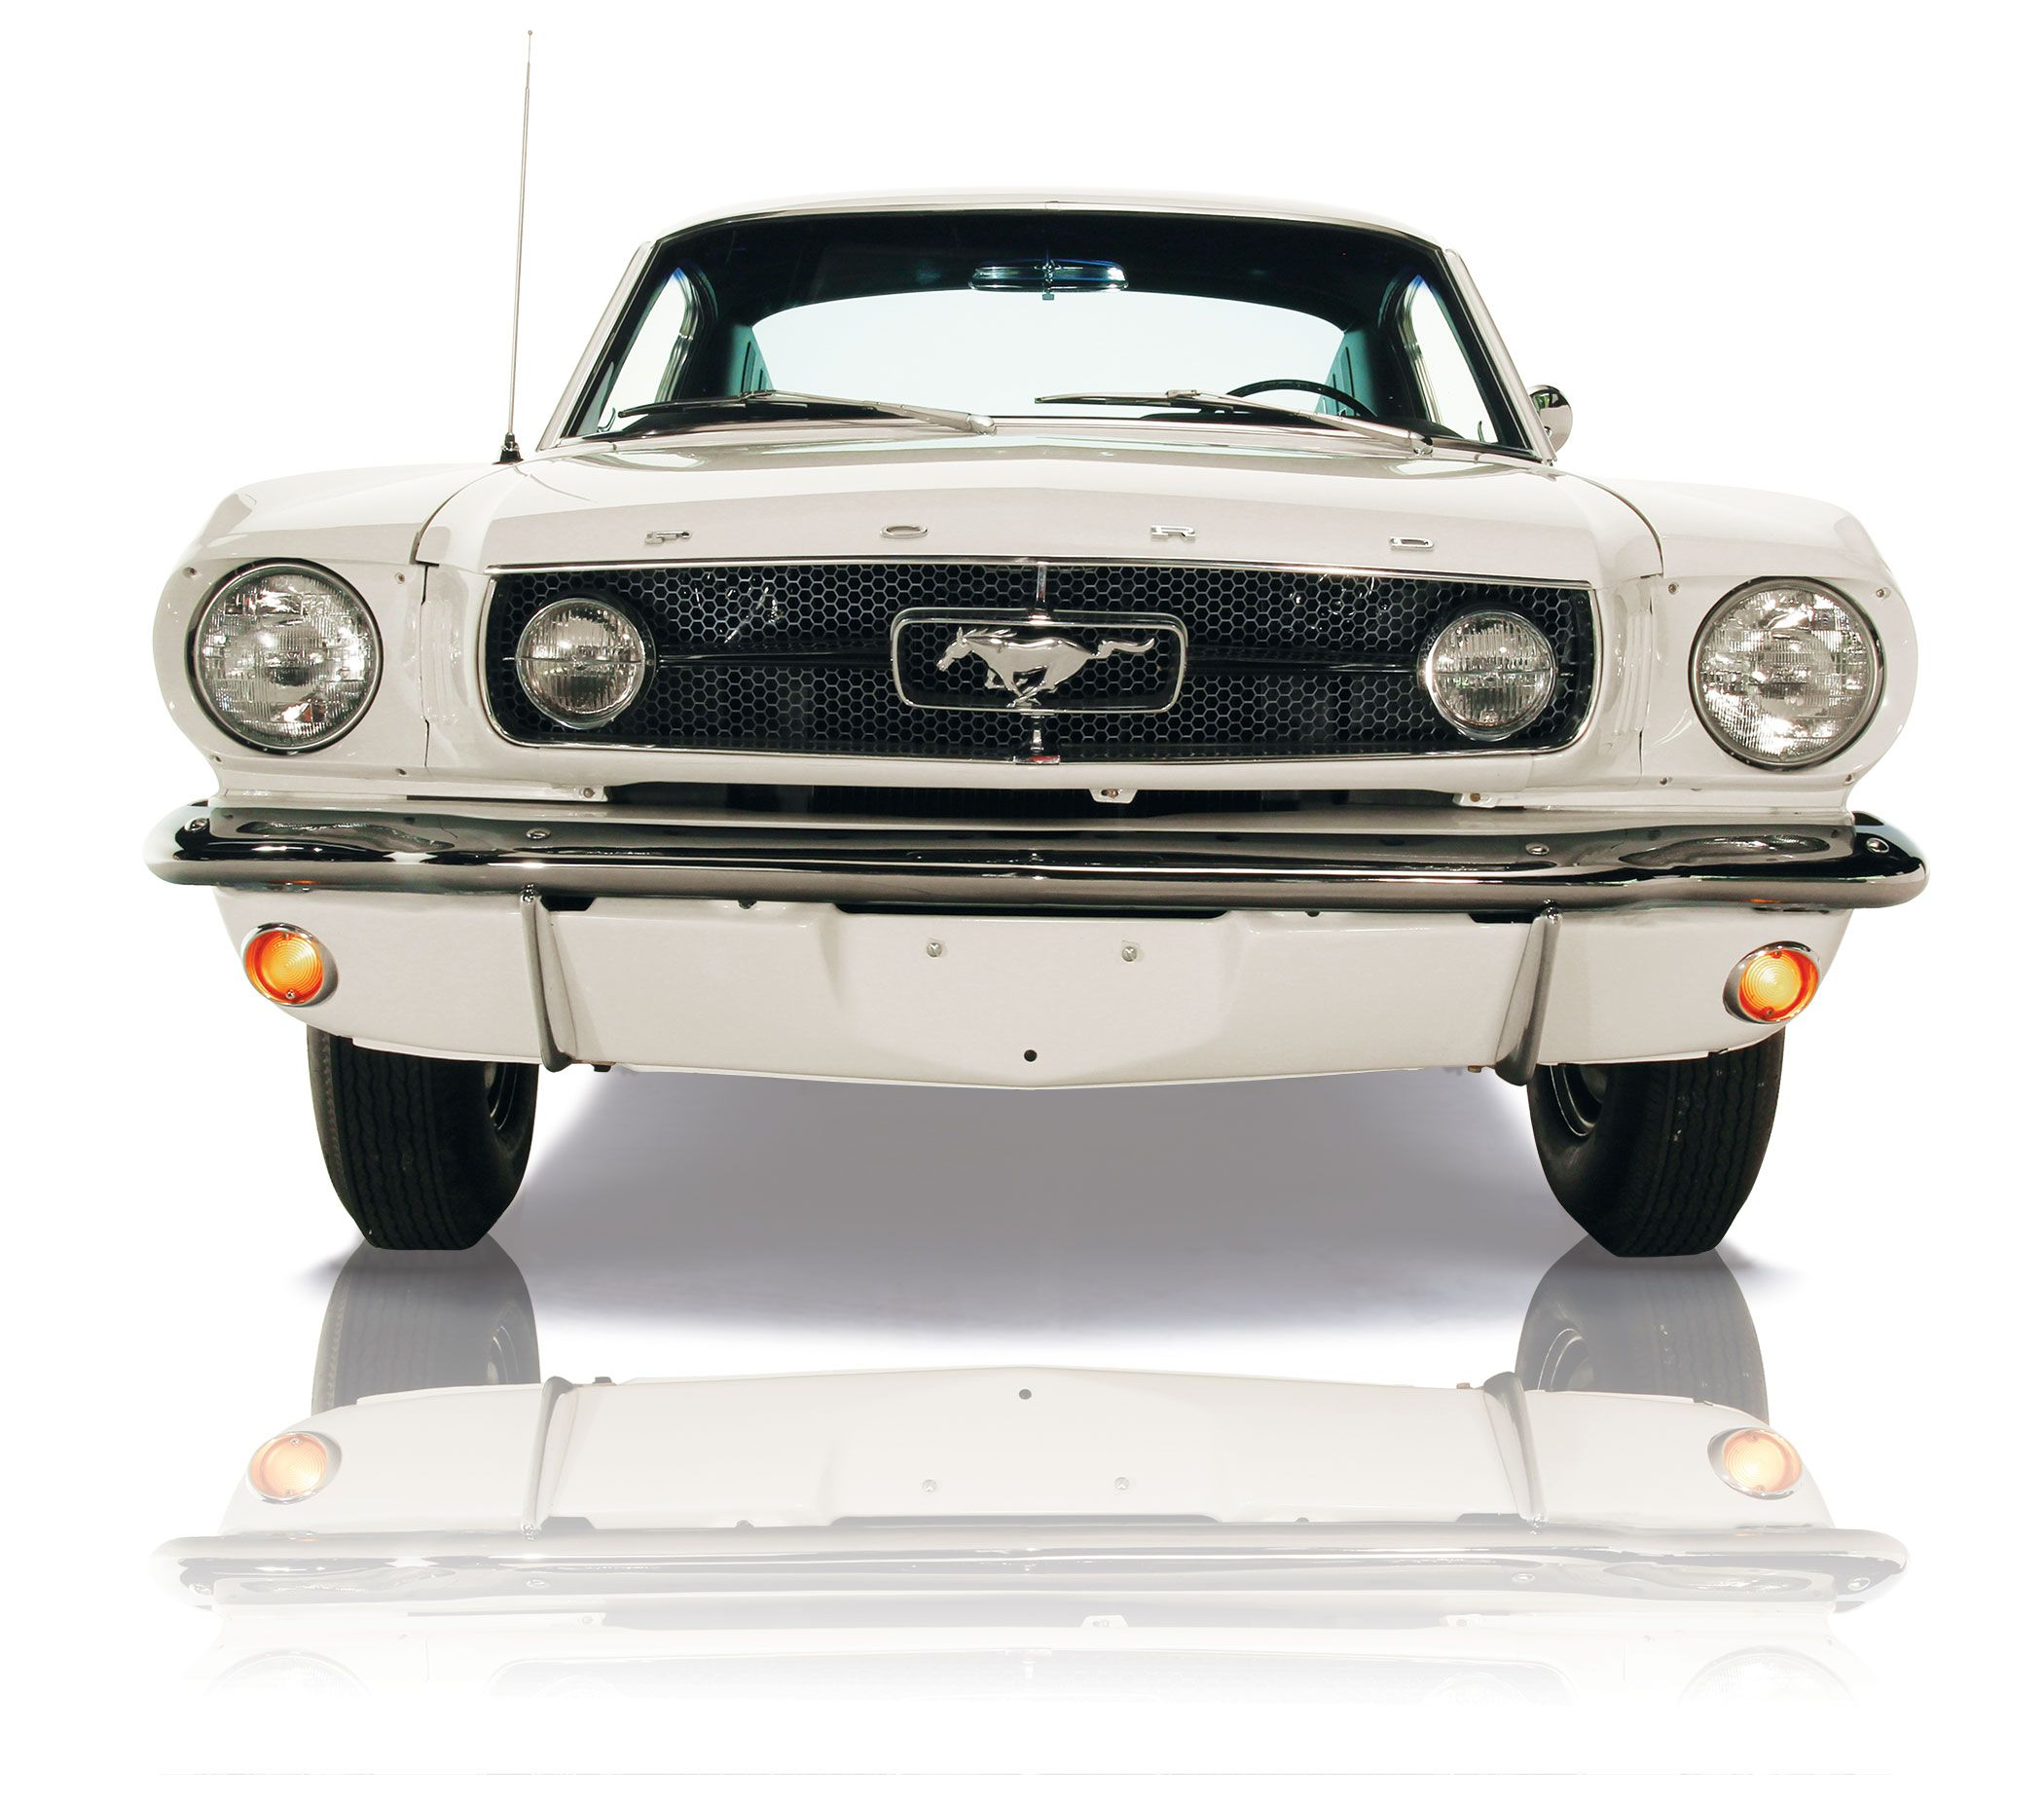 The 1965 Ford Mustang GT K Code Fastback in Wimbleton White from the